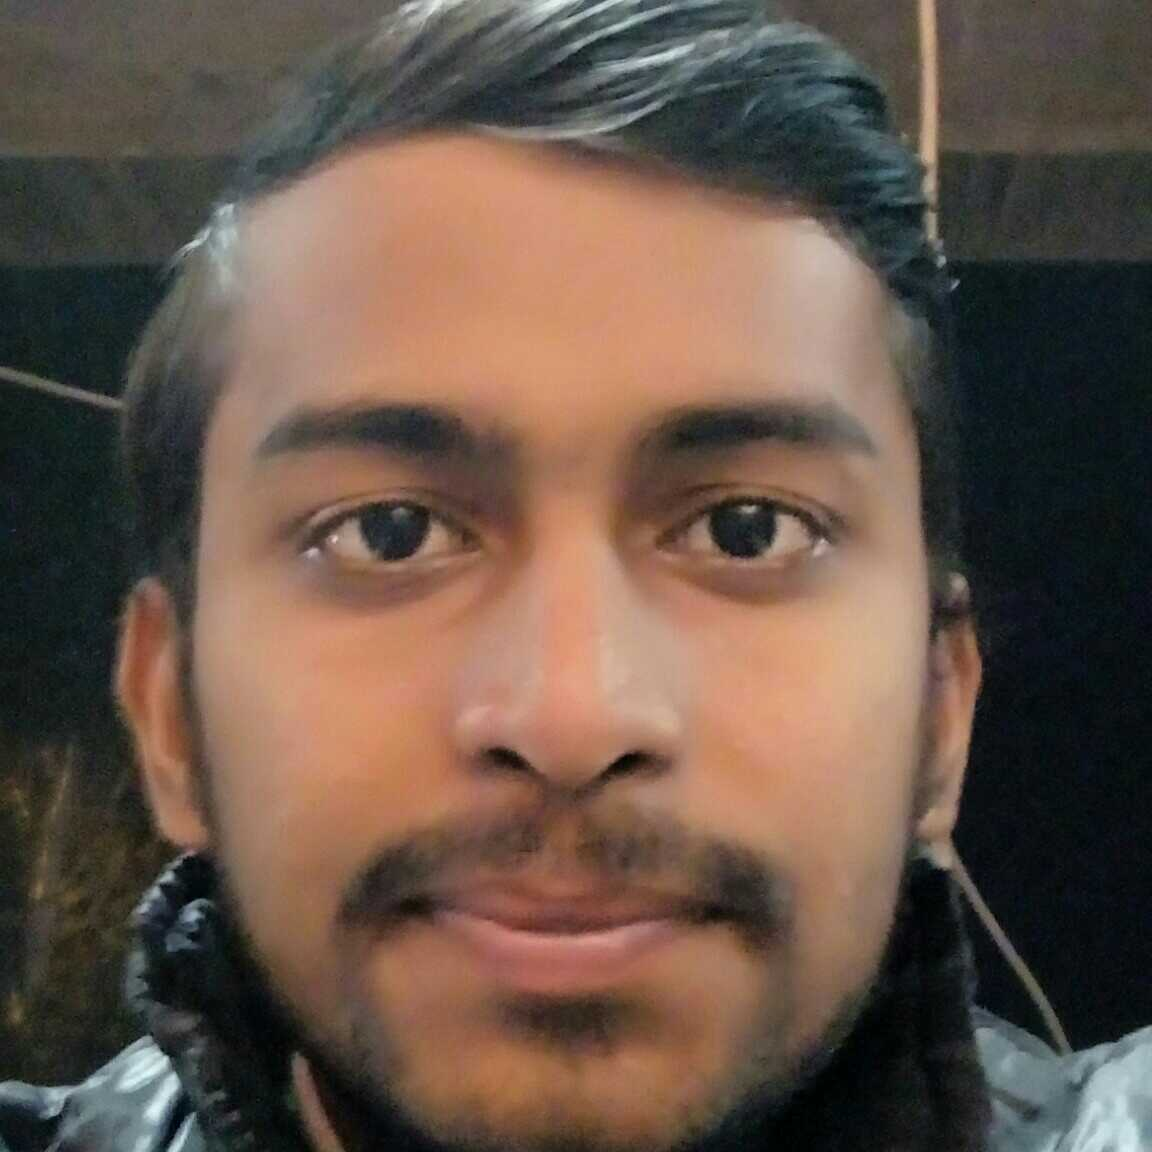 Harendra poet ,music lover and student